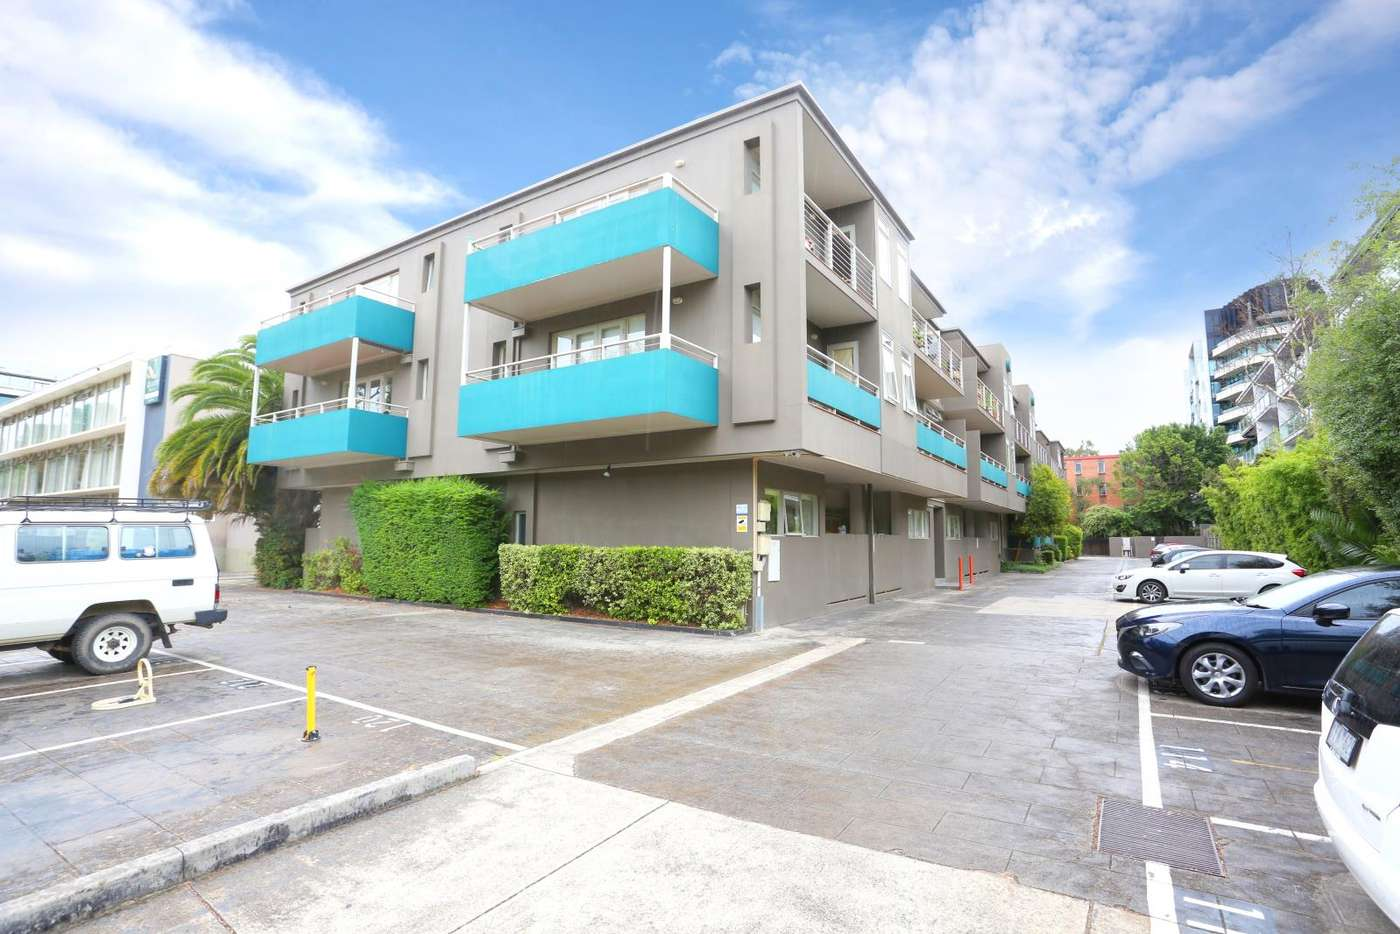 Main view of Homely apartment listing, 101/445 Royal Parade, Parkville VIC 3052